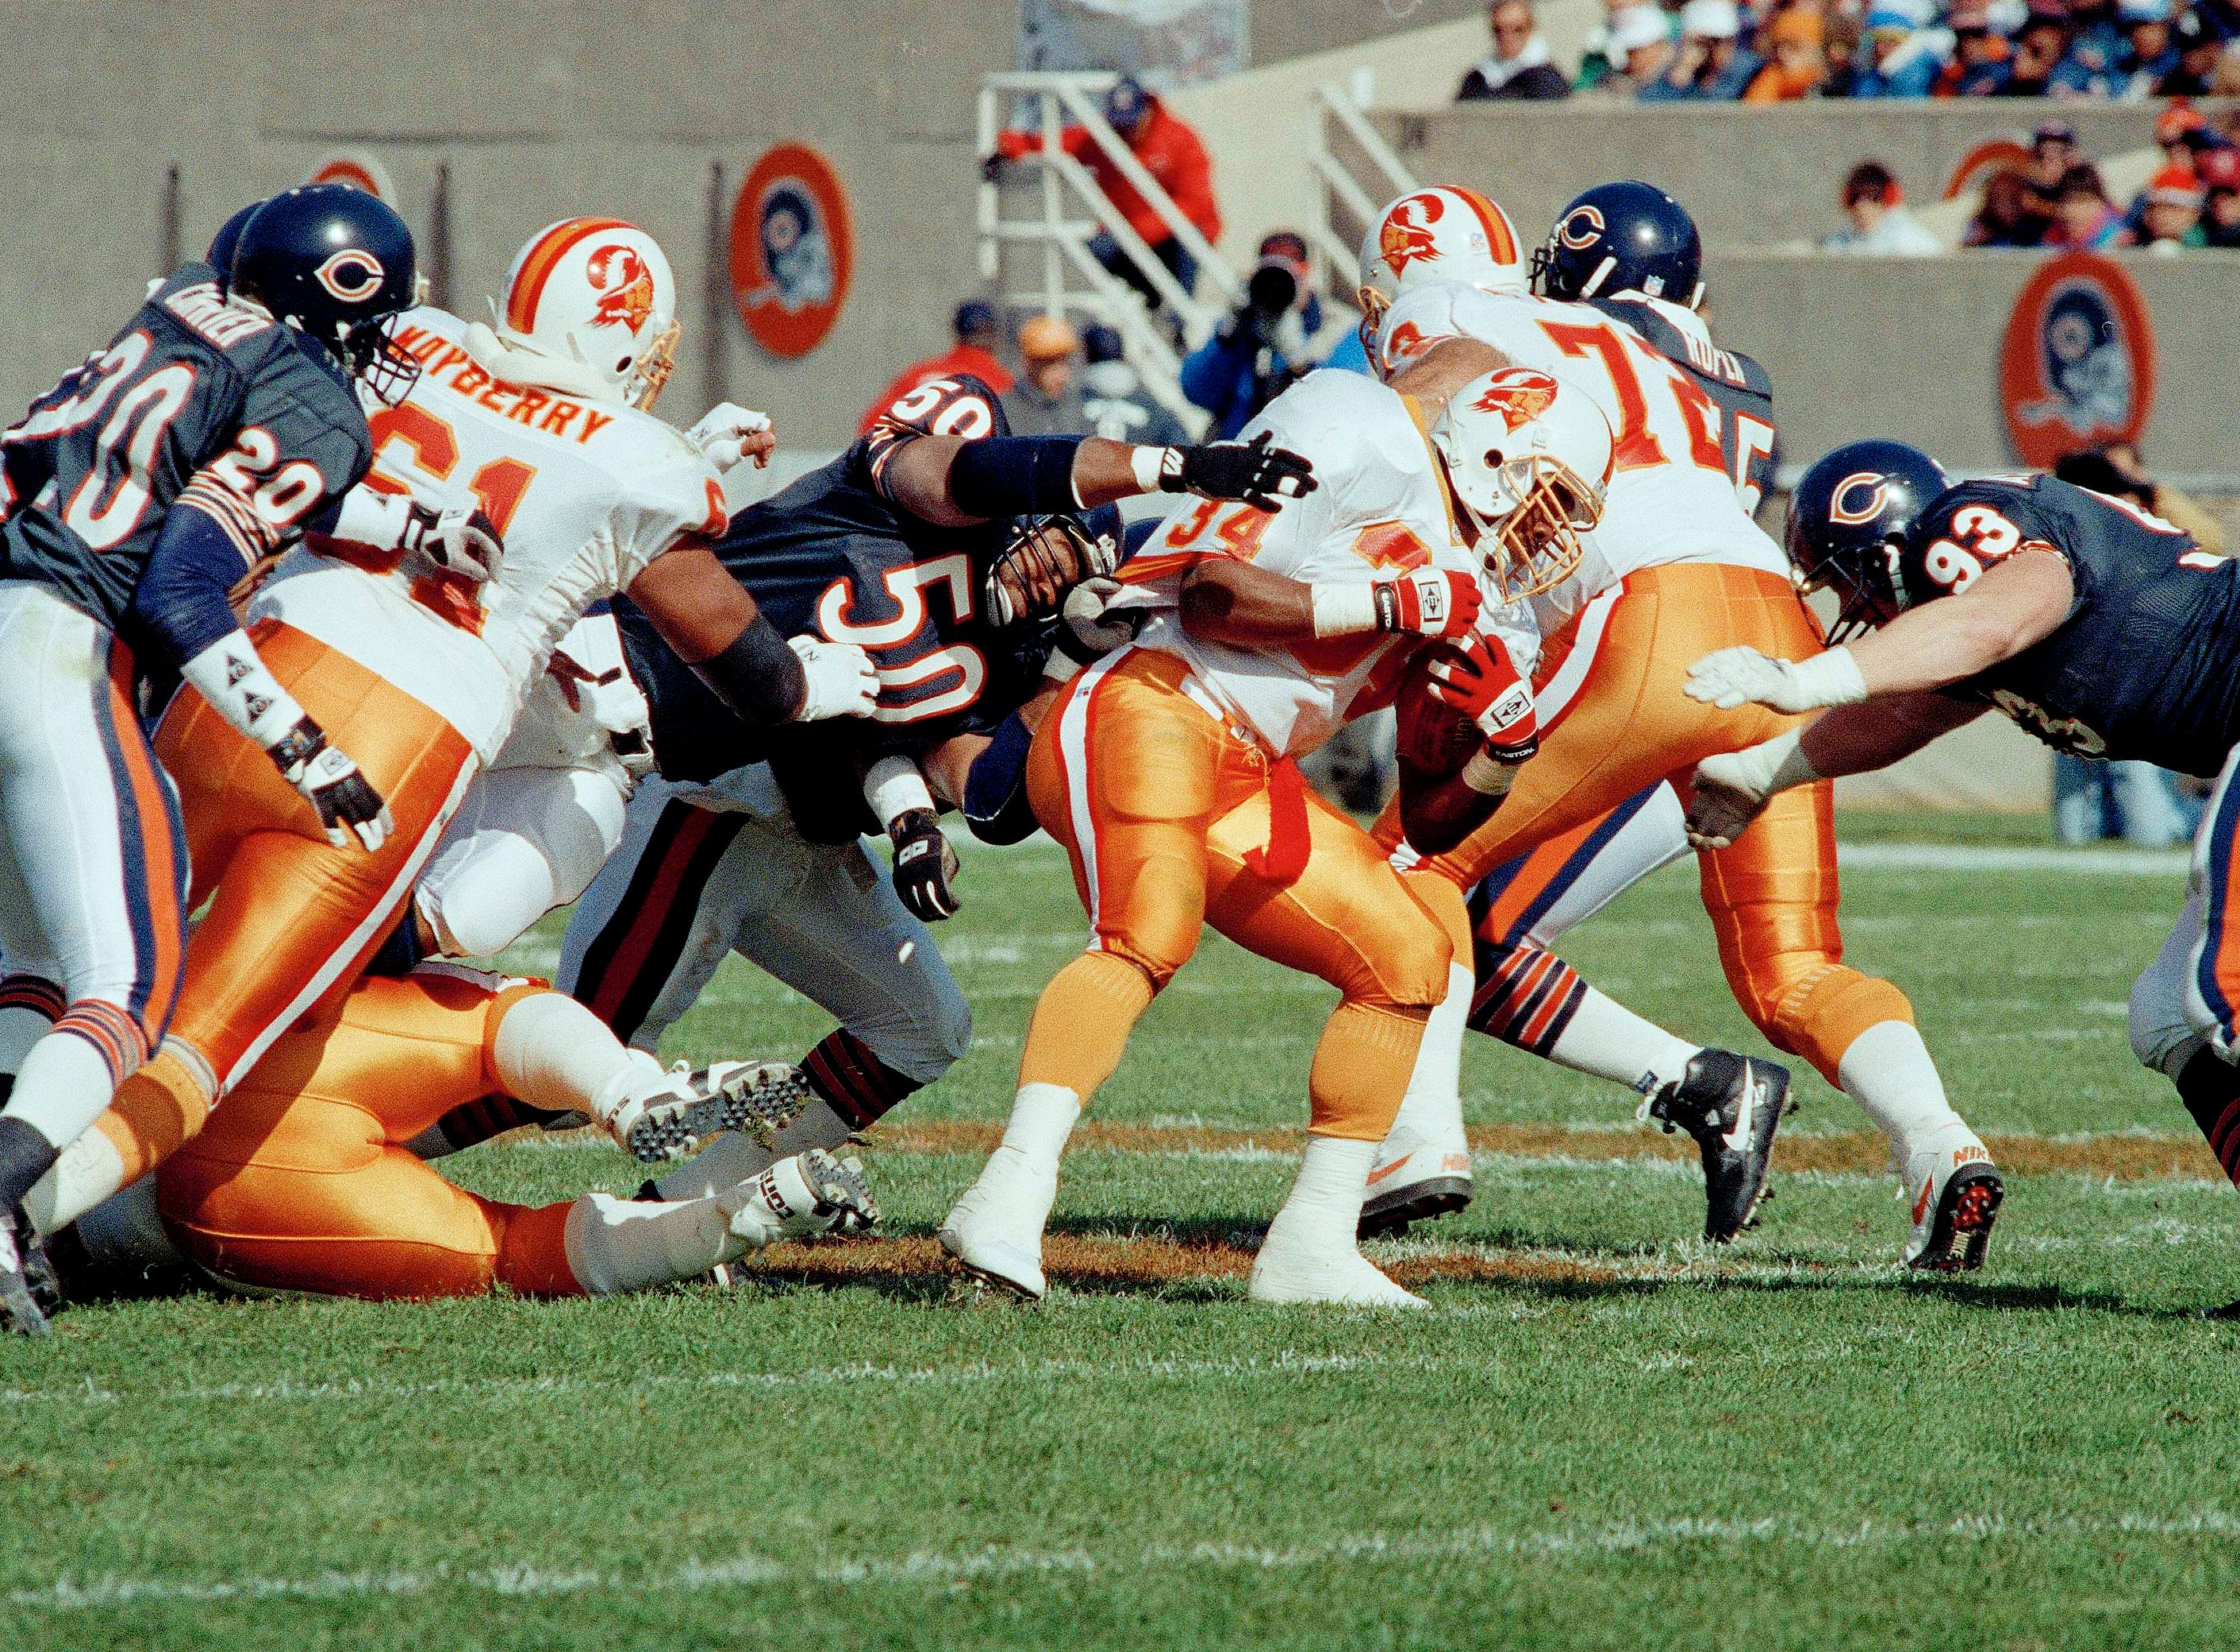 Tampa Bay Buccaneers running back Reggie Cobb (34) is stopped on a 7-yard run by Chicago Bears Mike Singletary (50) and Trace Armstrong (93) in the second quarter at Chicago's Soldier Field, Oct. 18, 1992.